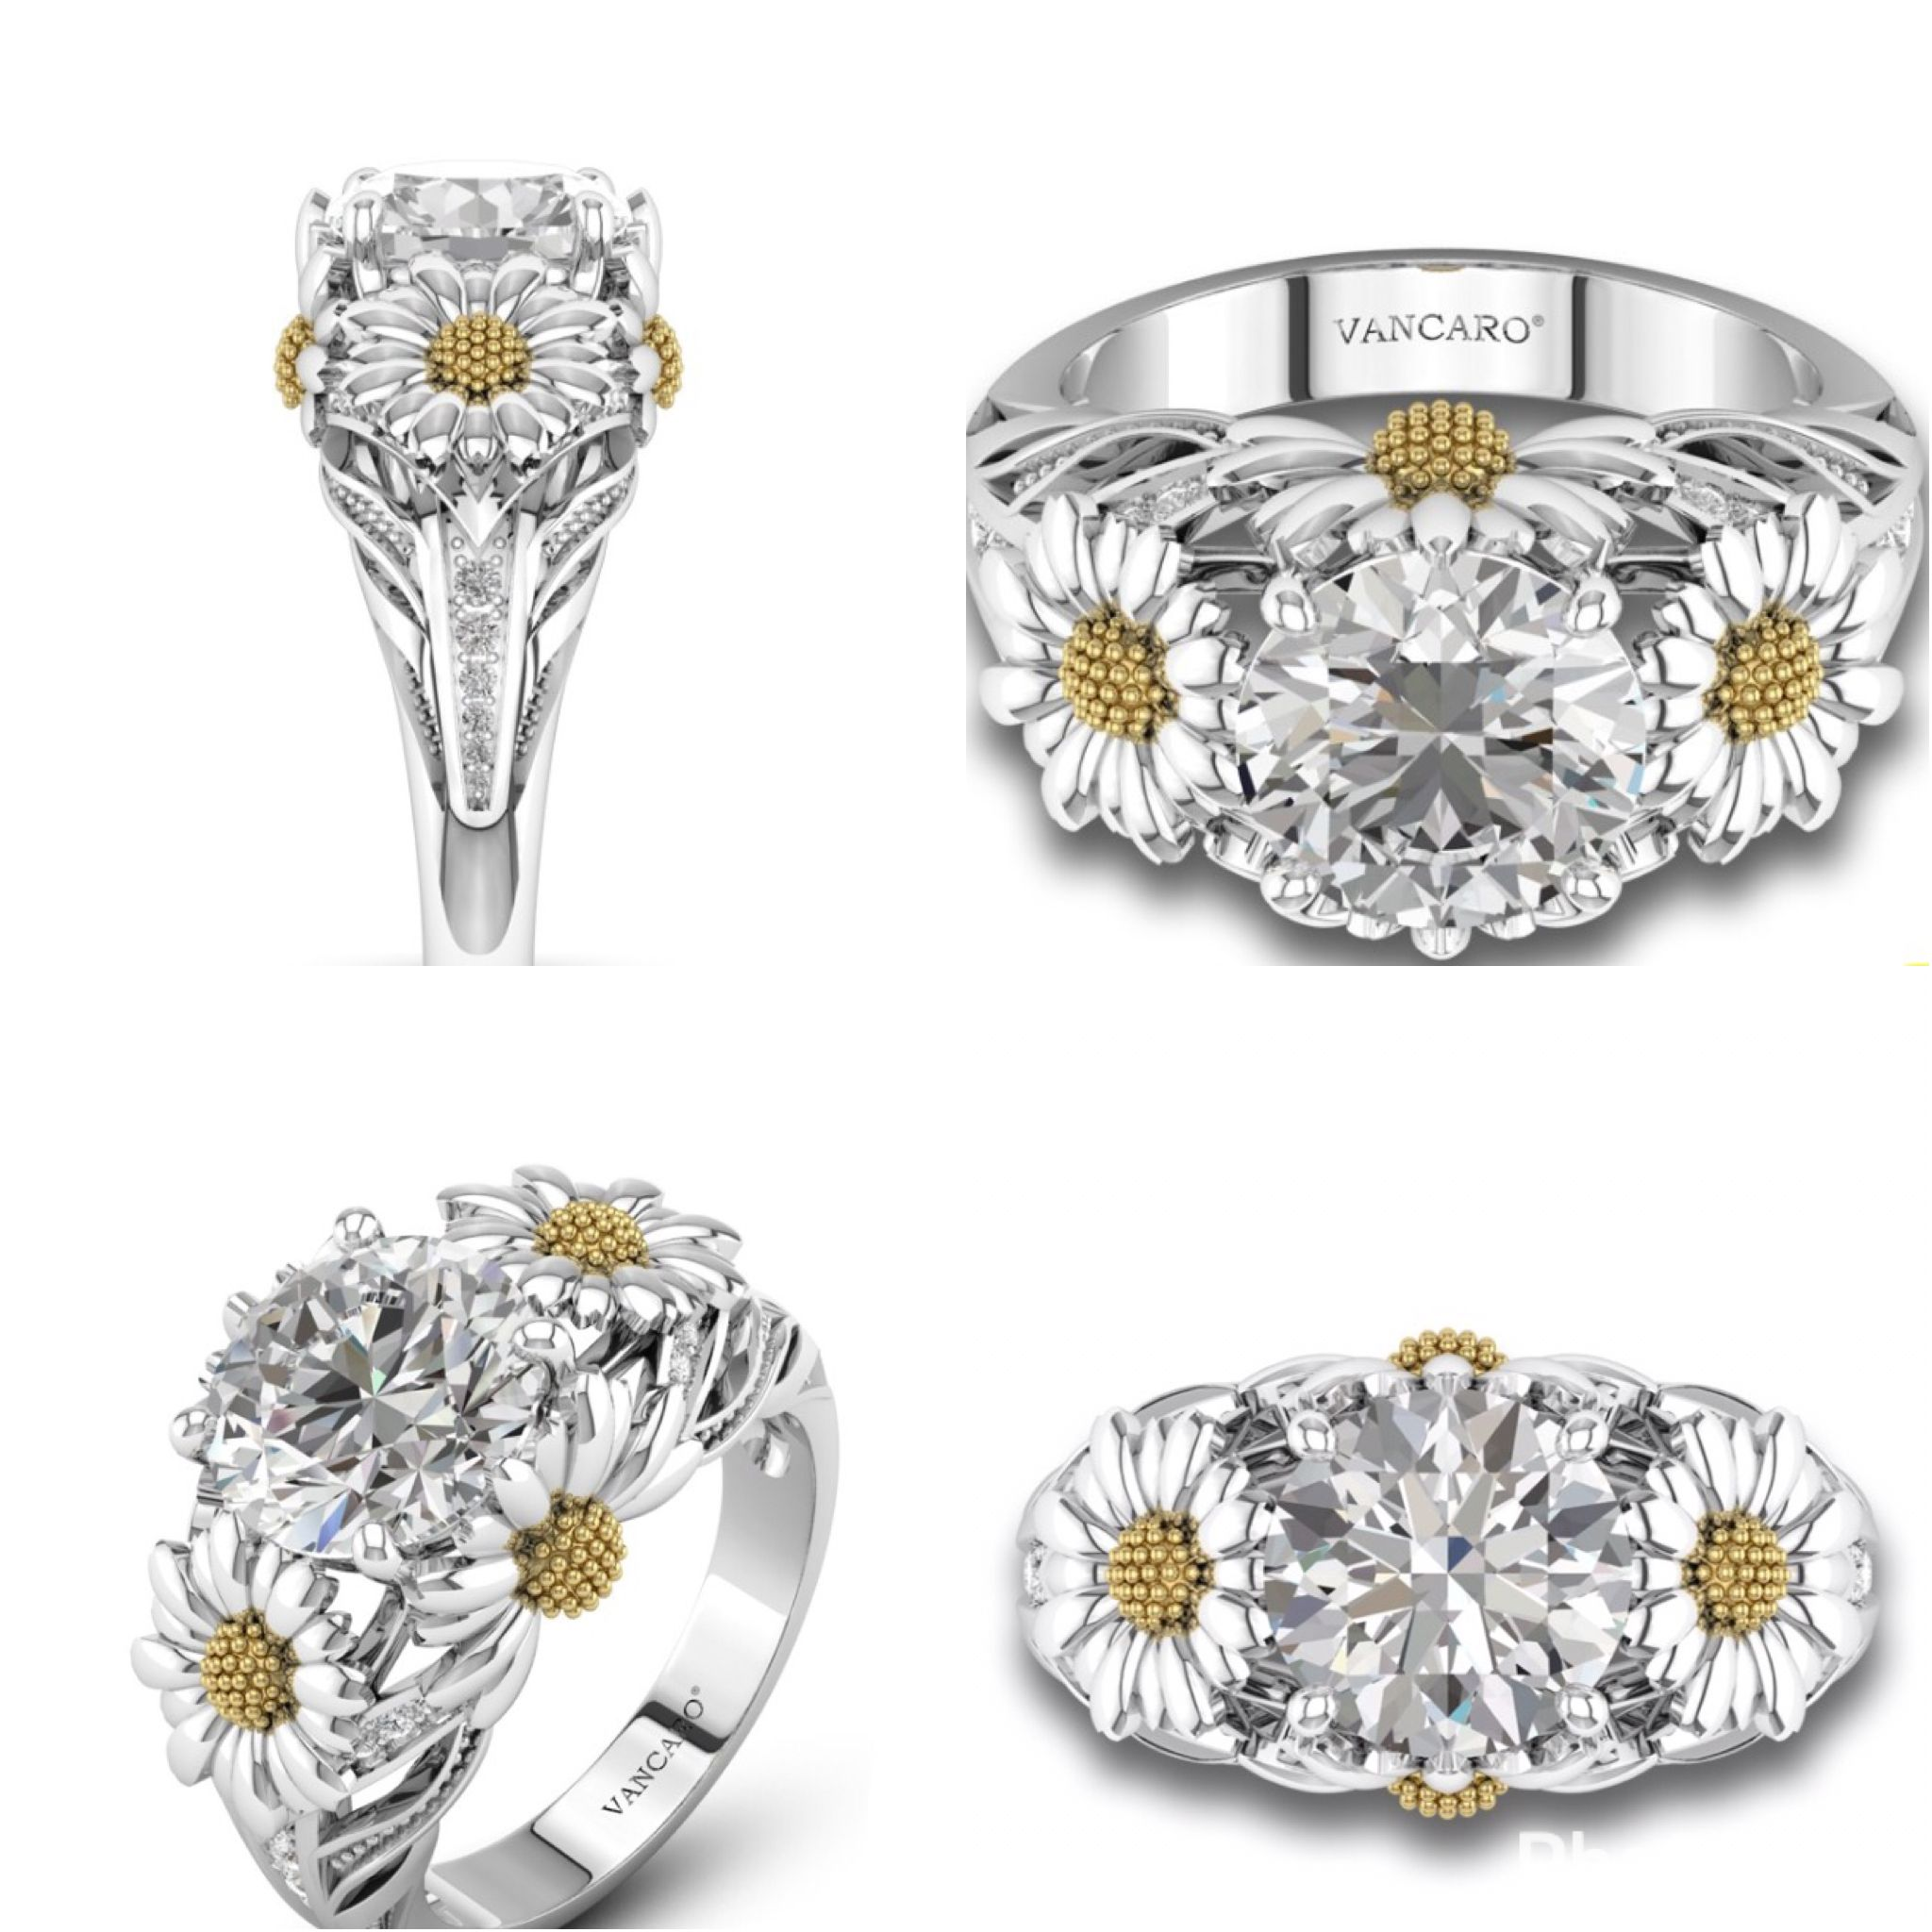 Beautiful Vancaro Ring This Only With A Yellow Stone In The Middle I Want It: Vancaro Wedding Bands Skulls At Websimilar.org